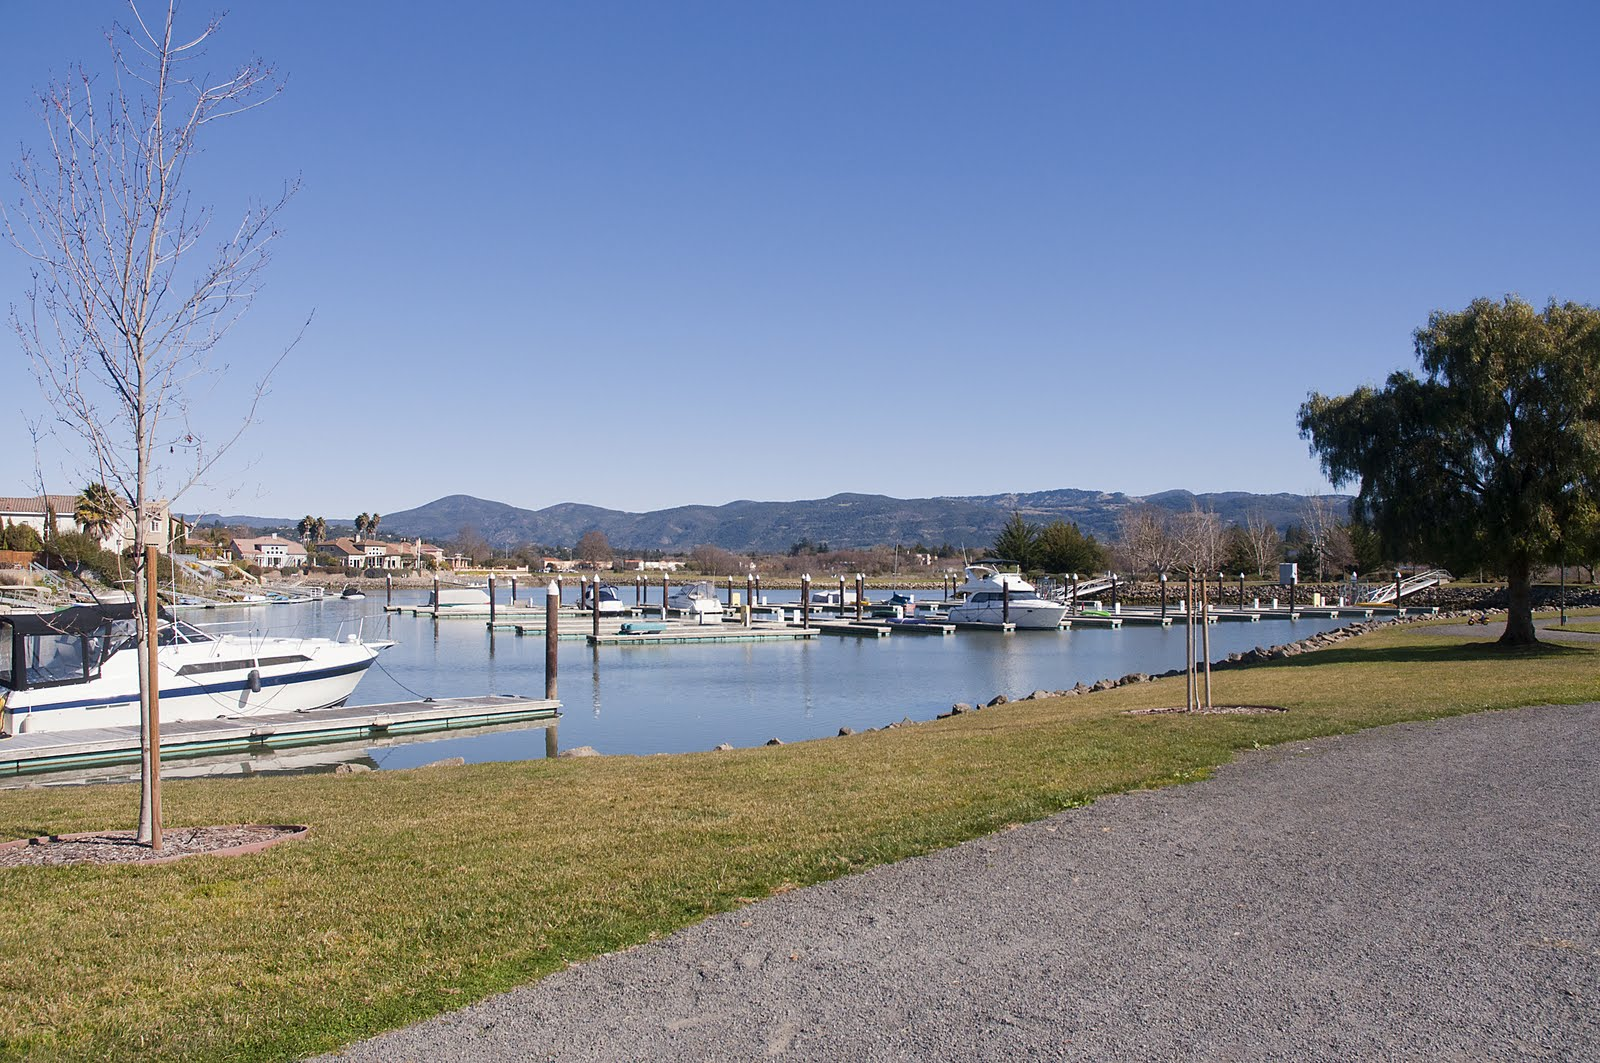 Napa Yacht Club And River Park Marina Are Small Friendly Communities That Offer Great Options For Families Retirees Vacation Home Owners Investors